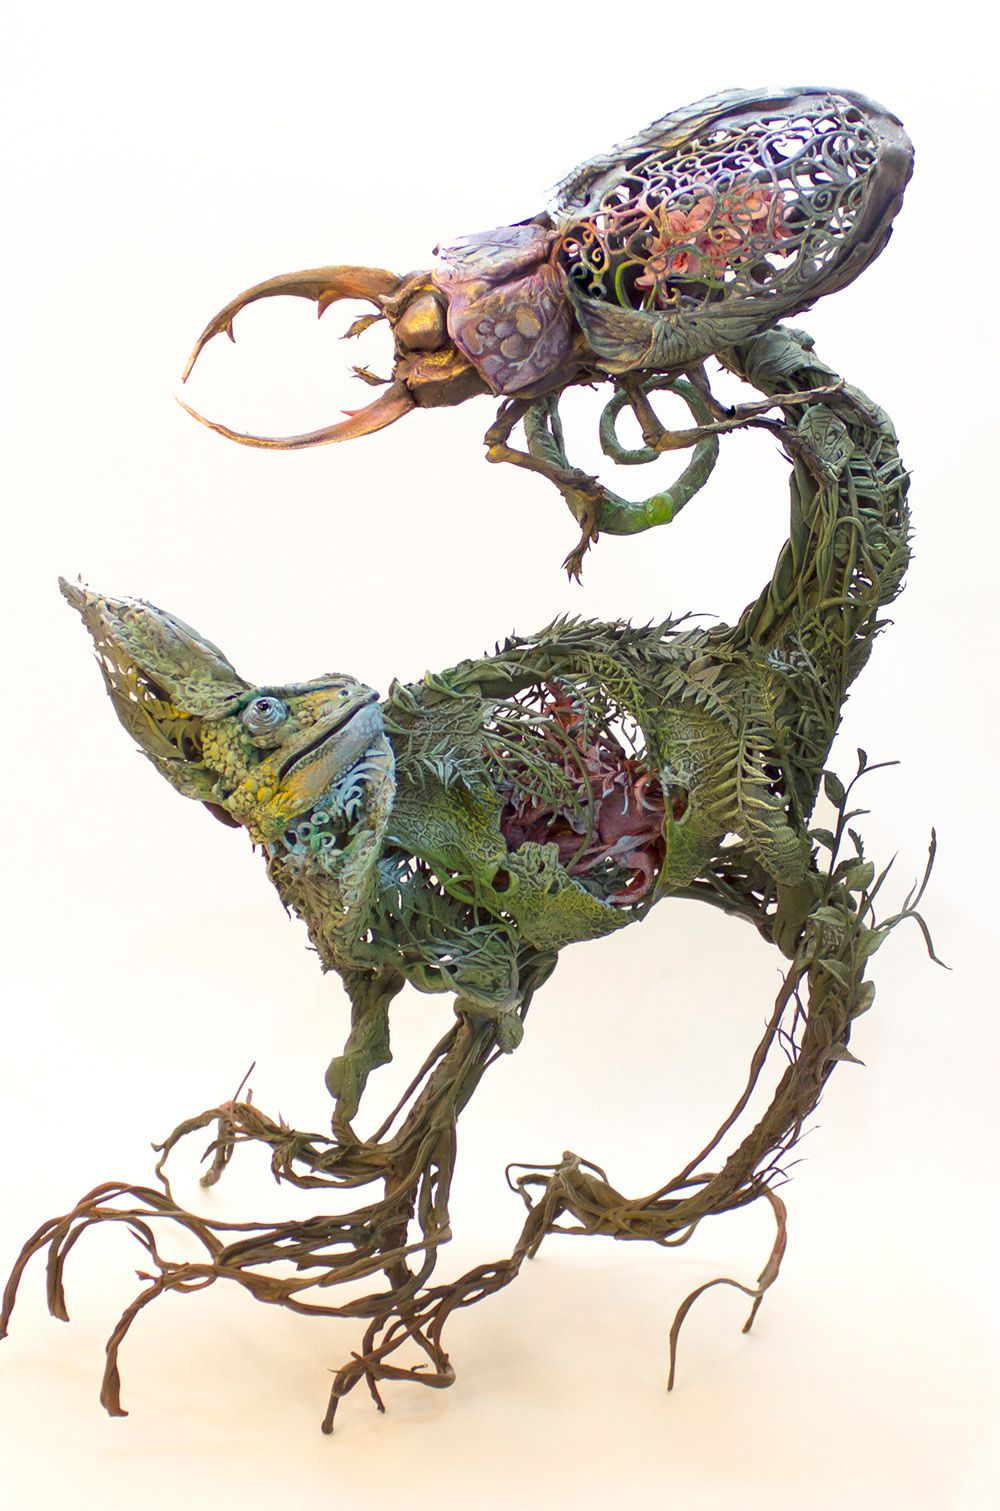 Lush And Surreal Sculptures Of Symbiotic Animals By Ellen Jewett 6